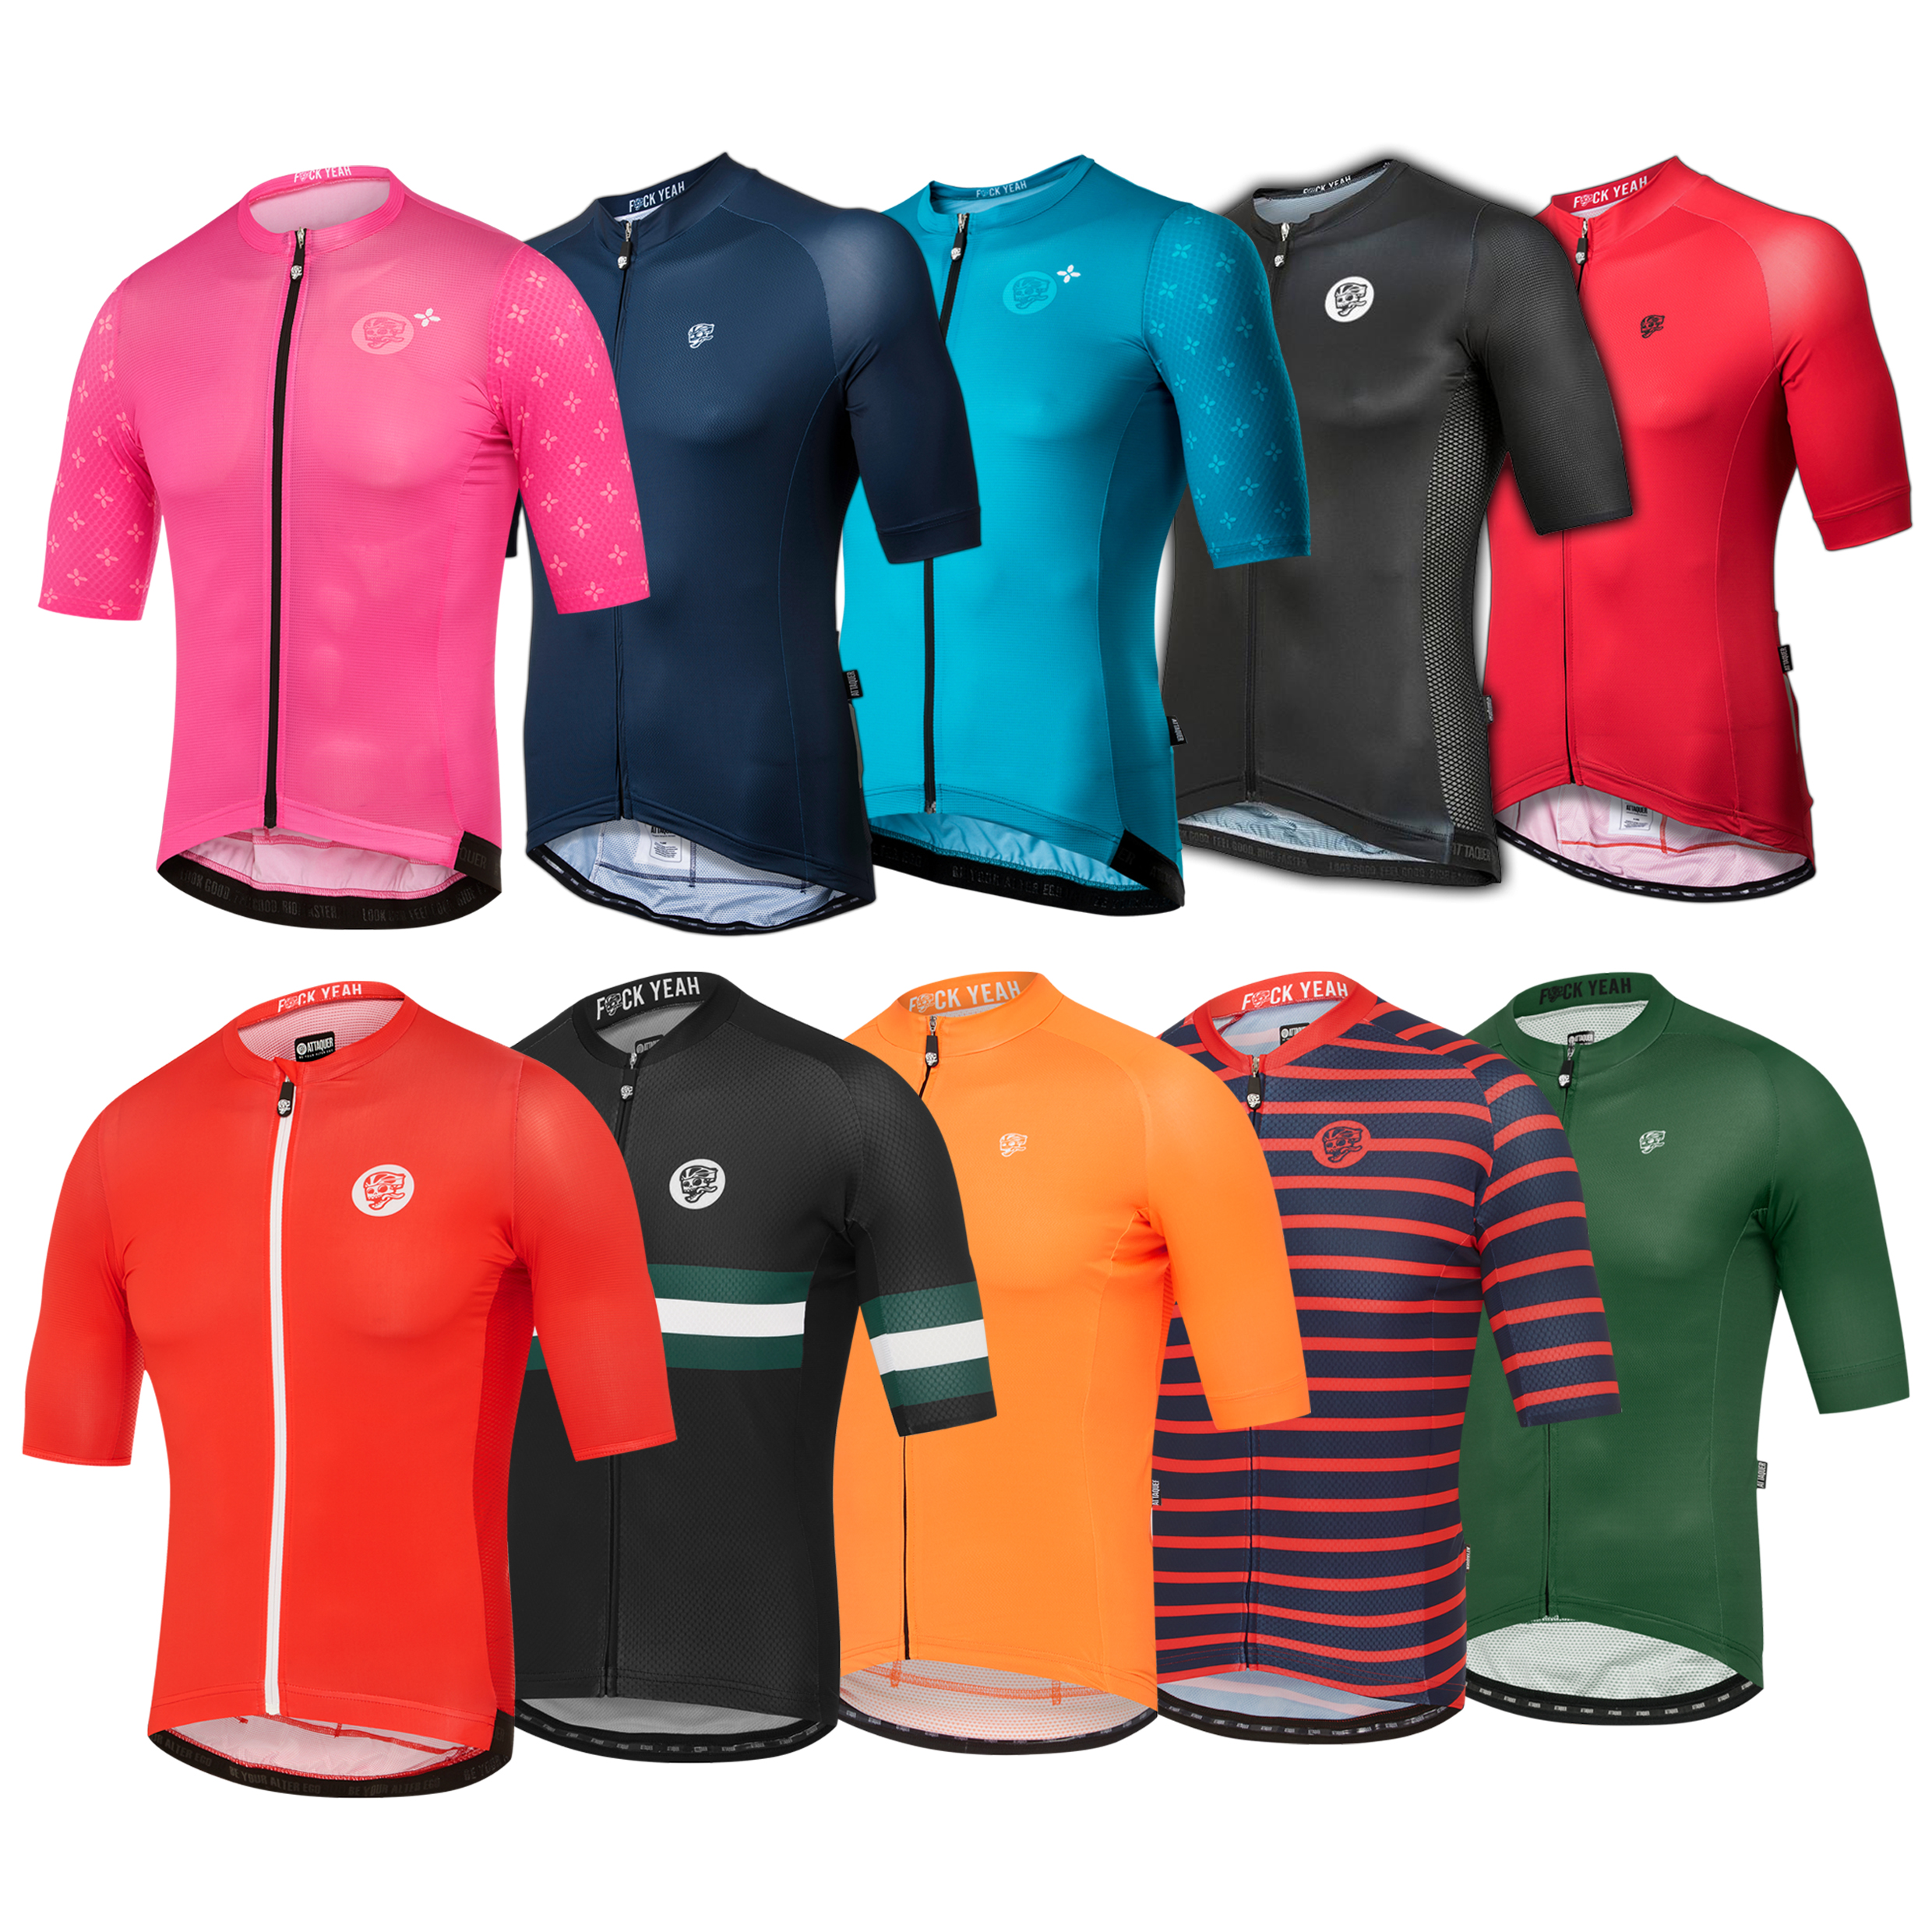 Colorful Cycling Jersey Attaquer Cycling Men Cycling Clothes Short Sleeve Road Bike Clothing Ropa Ciclismo Outdoor MTB Maillot